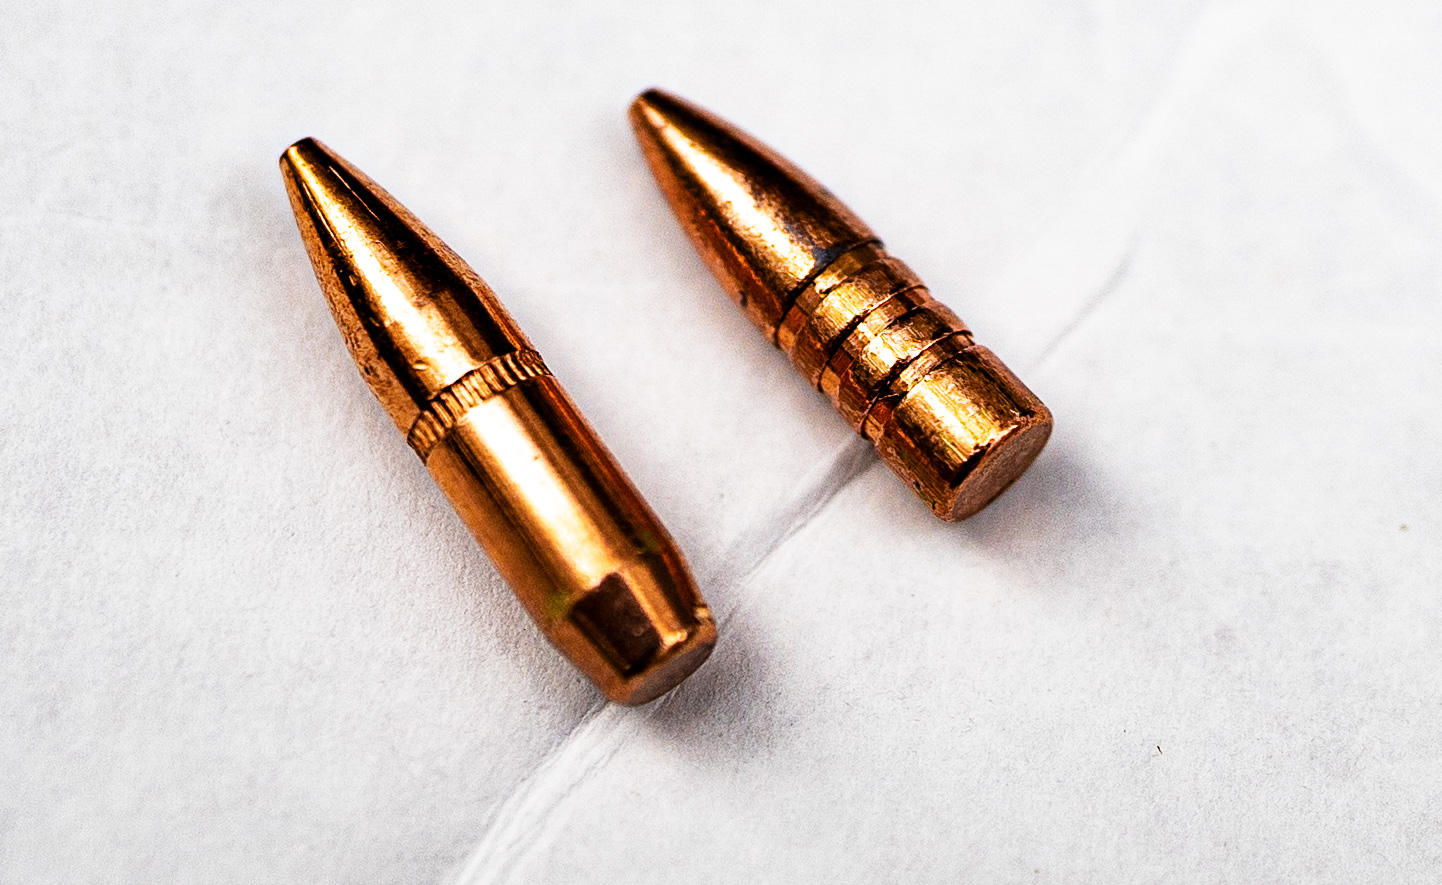 A boat tail bullet side by side with a flat base bullet